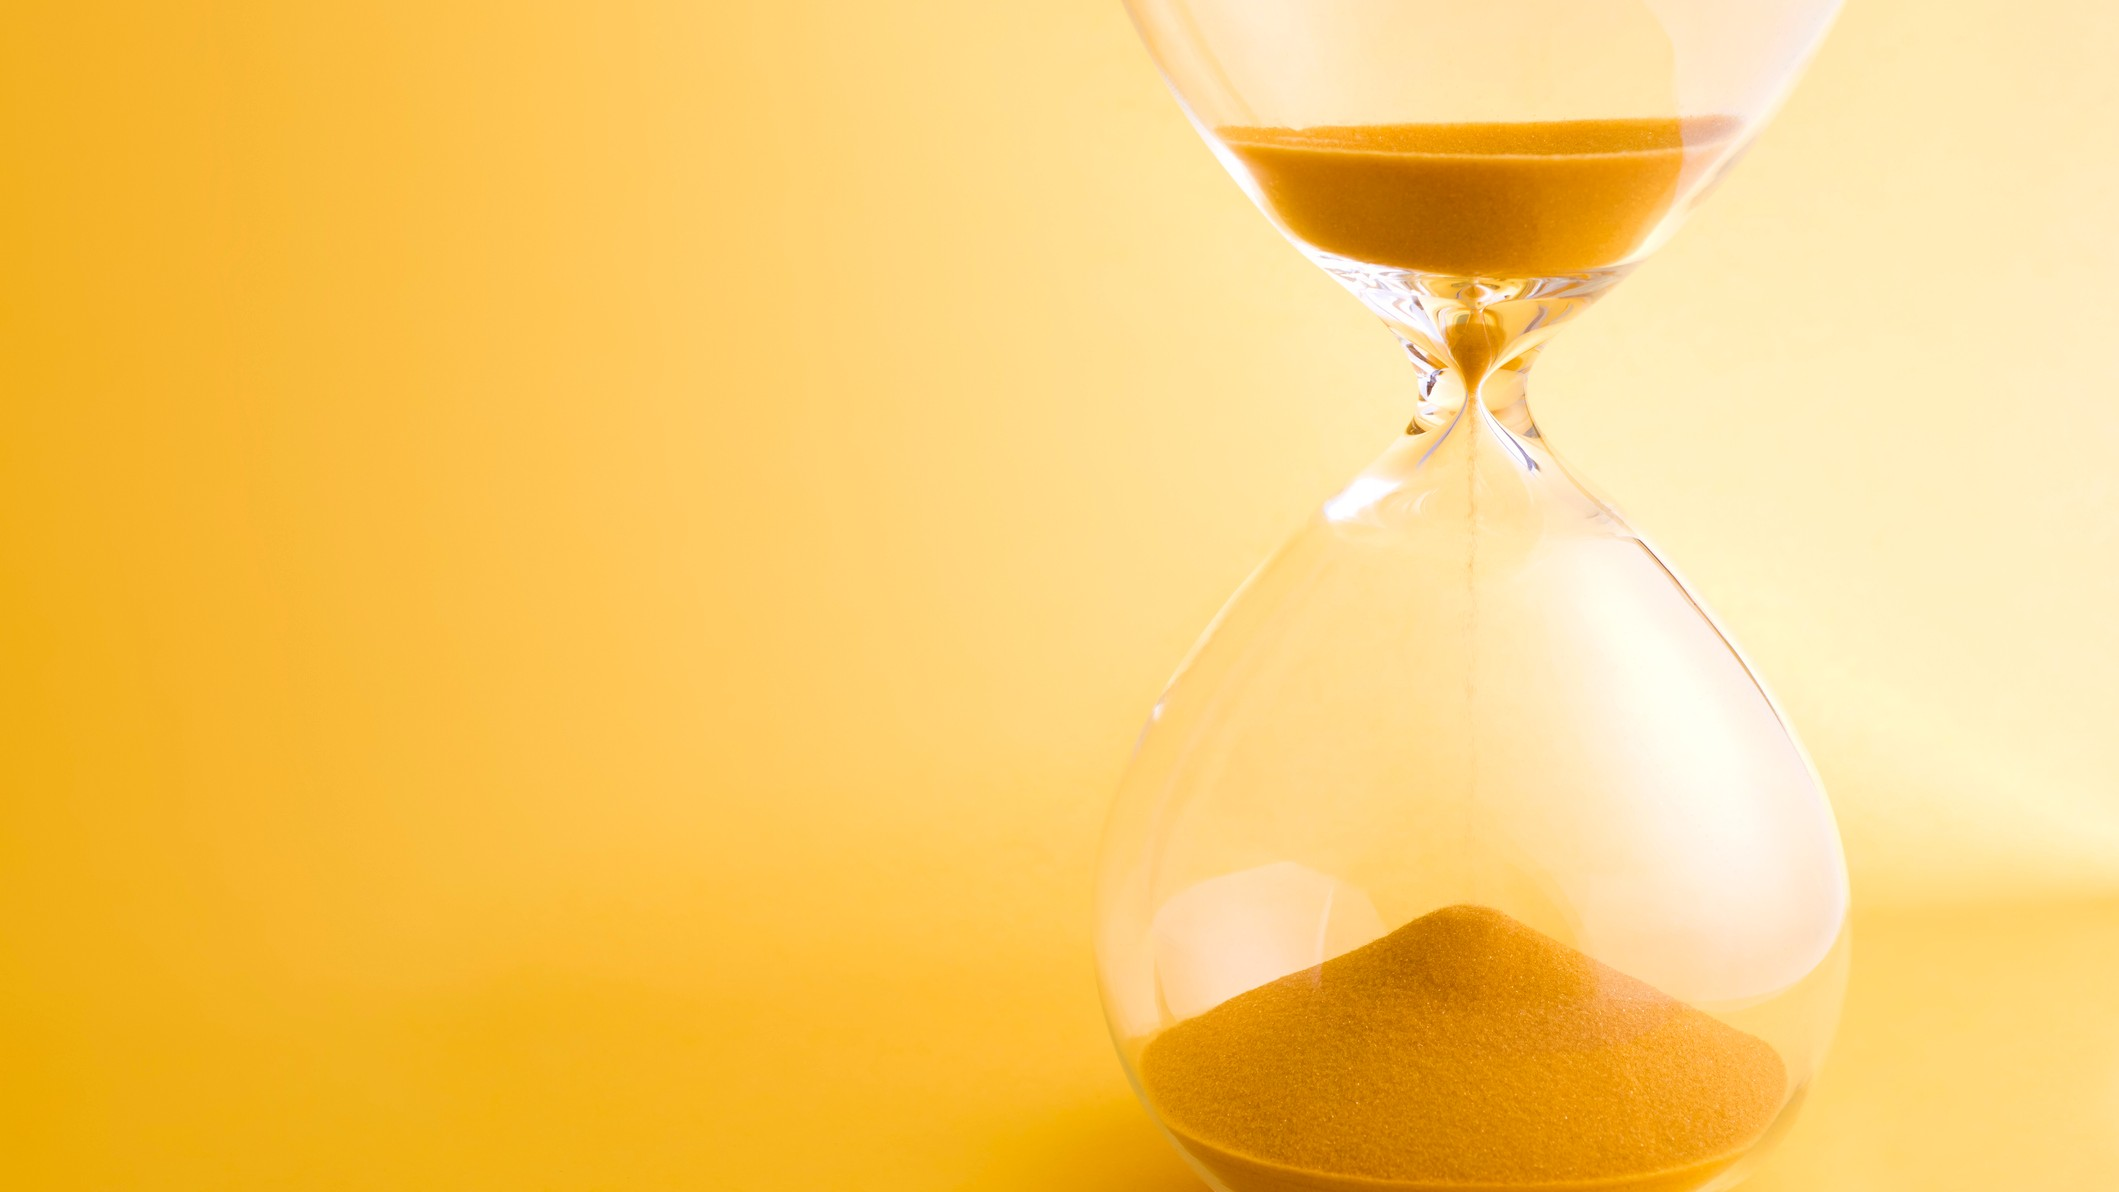 asx share price deadline represented by egg timer running low